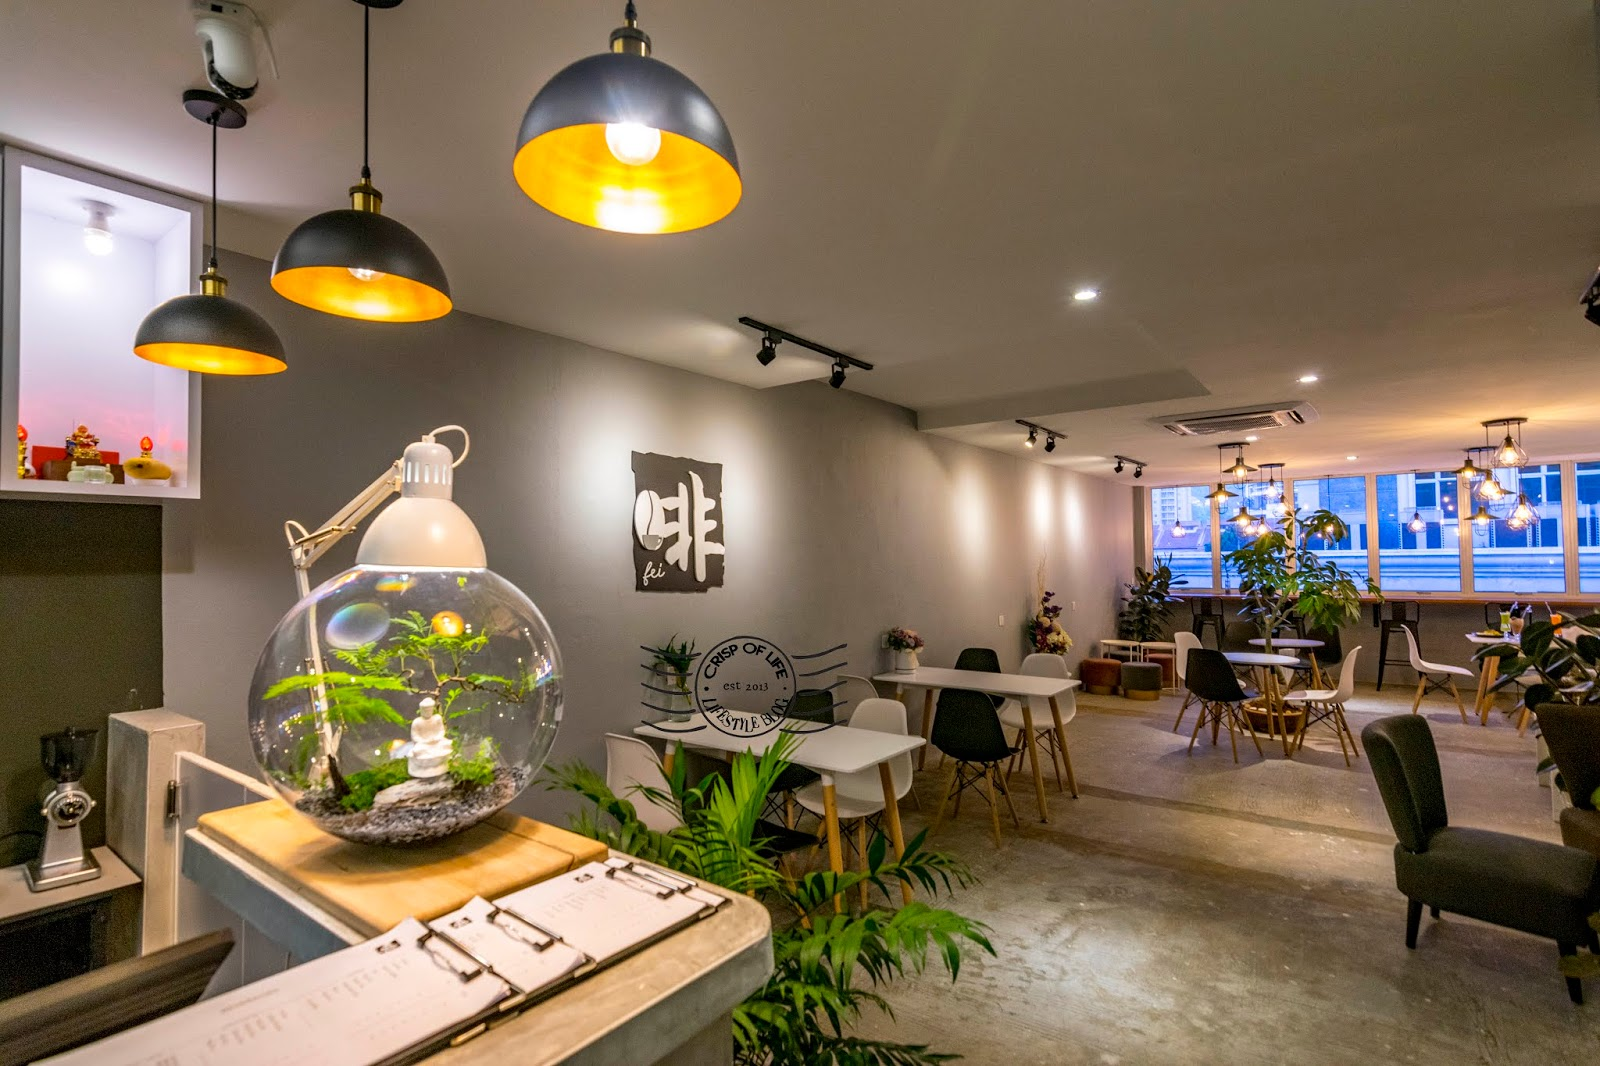 Fei Brew Cafe - The Meatless and Healthy Cafe @ Bayan Point, Penang